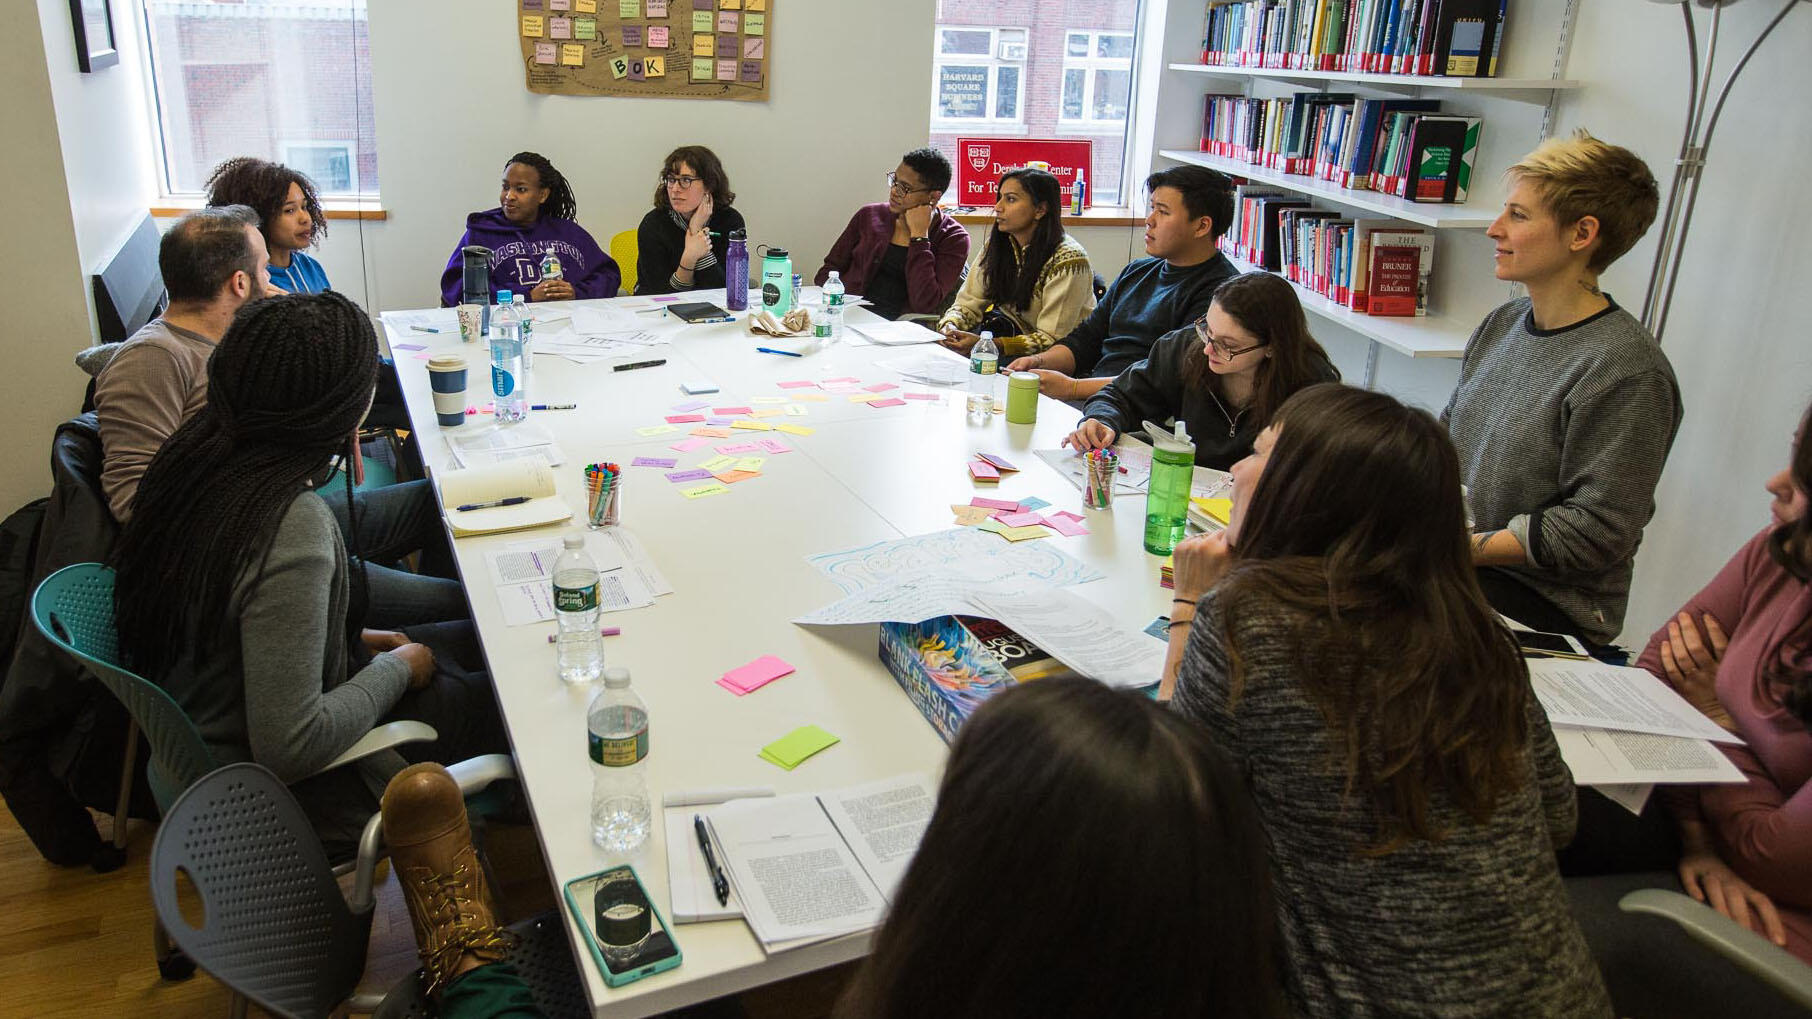 A group of undergraduate student fellows and graduate student fellows sit around a white rectangular table with colored cards and printed readings scattered around